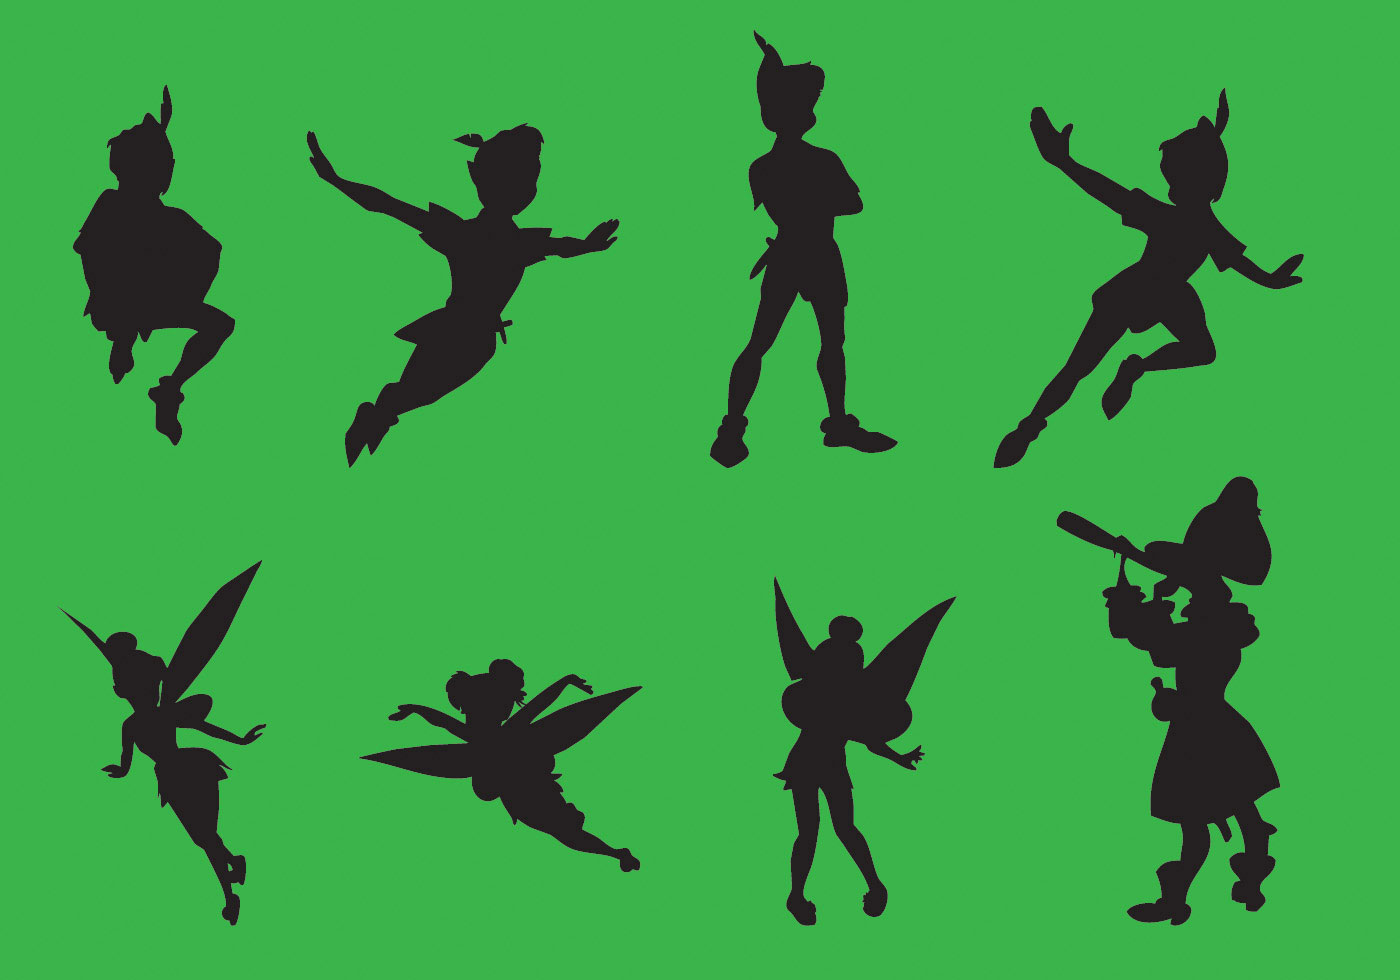 The character of peter pan